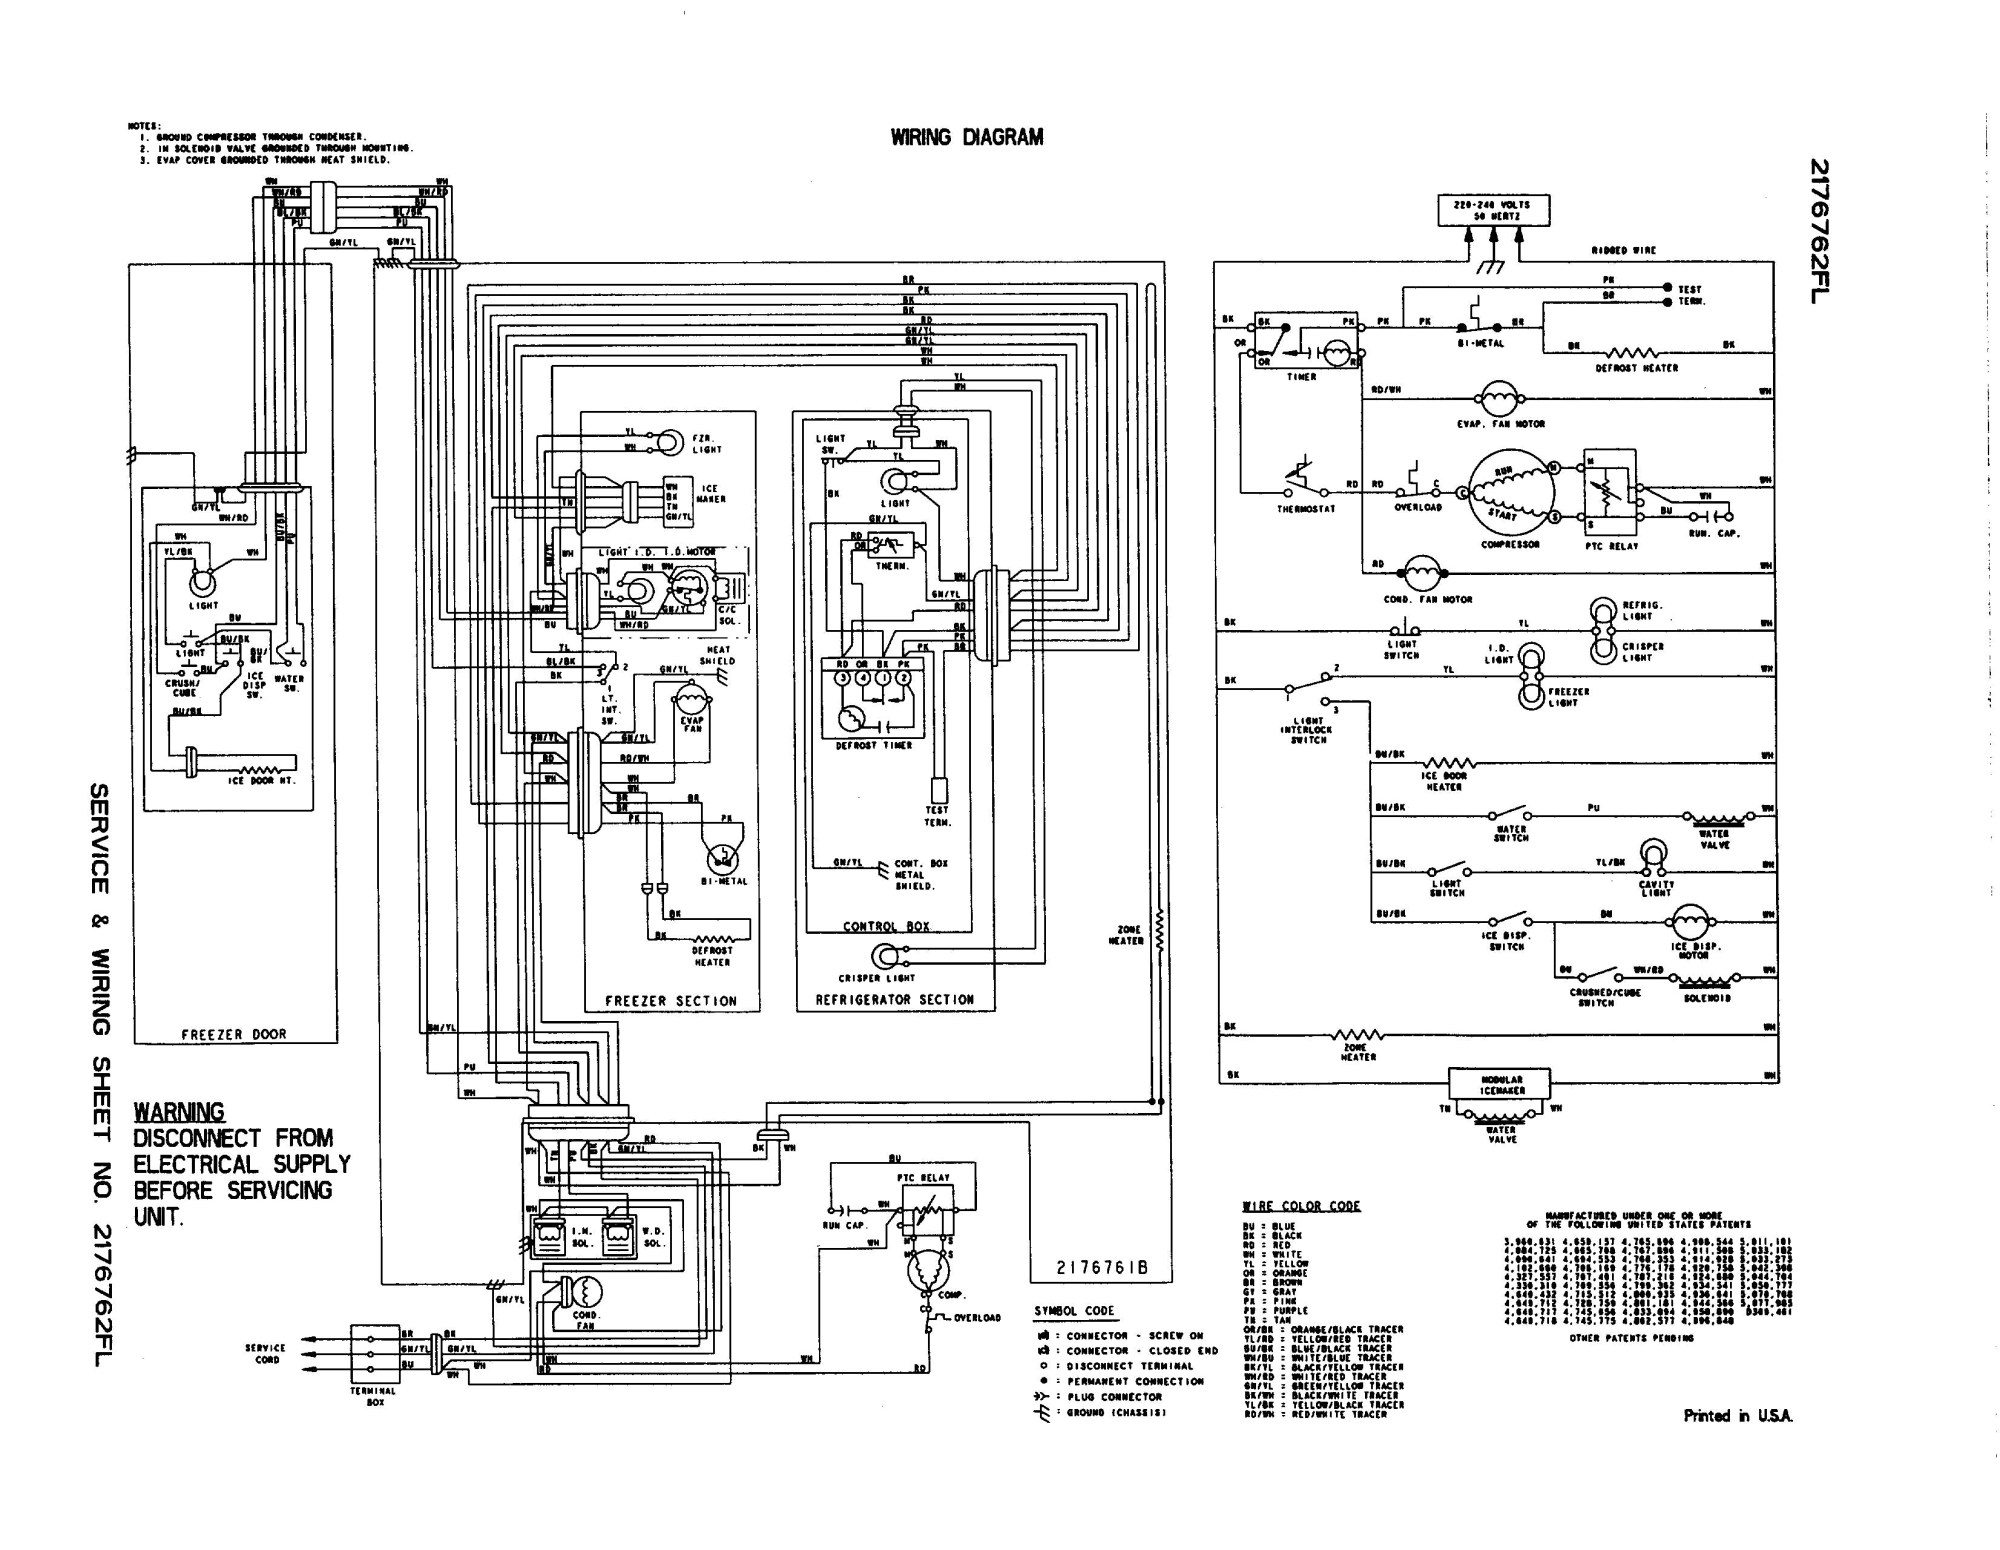 hight resolution of john deere 4020 starter wiring diagram john deere 455 wiring diagram lorestanfo of john deere 4020